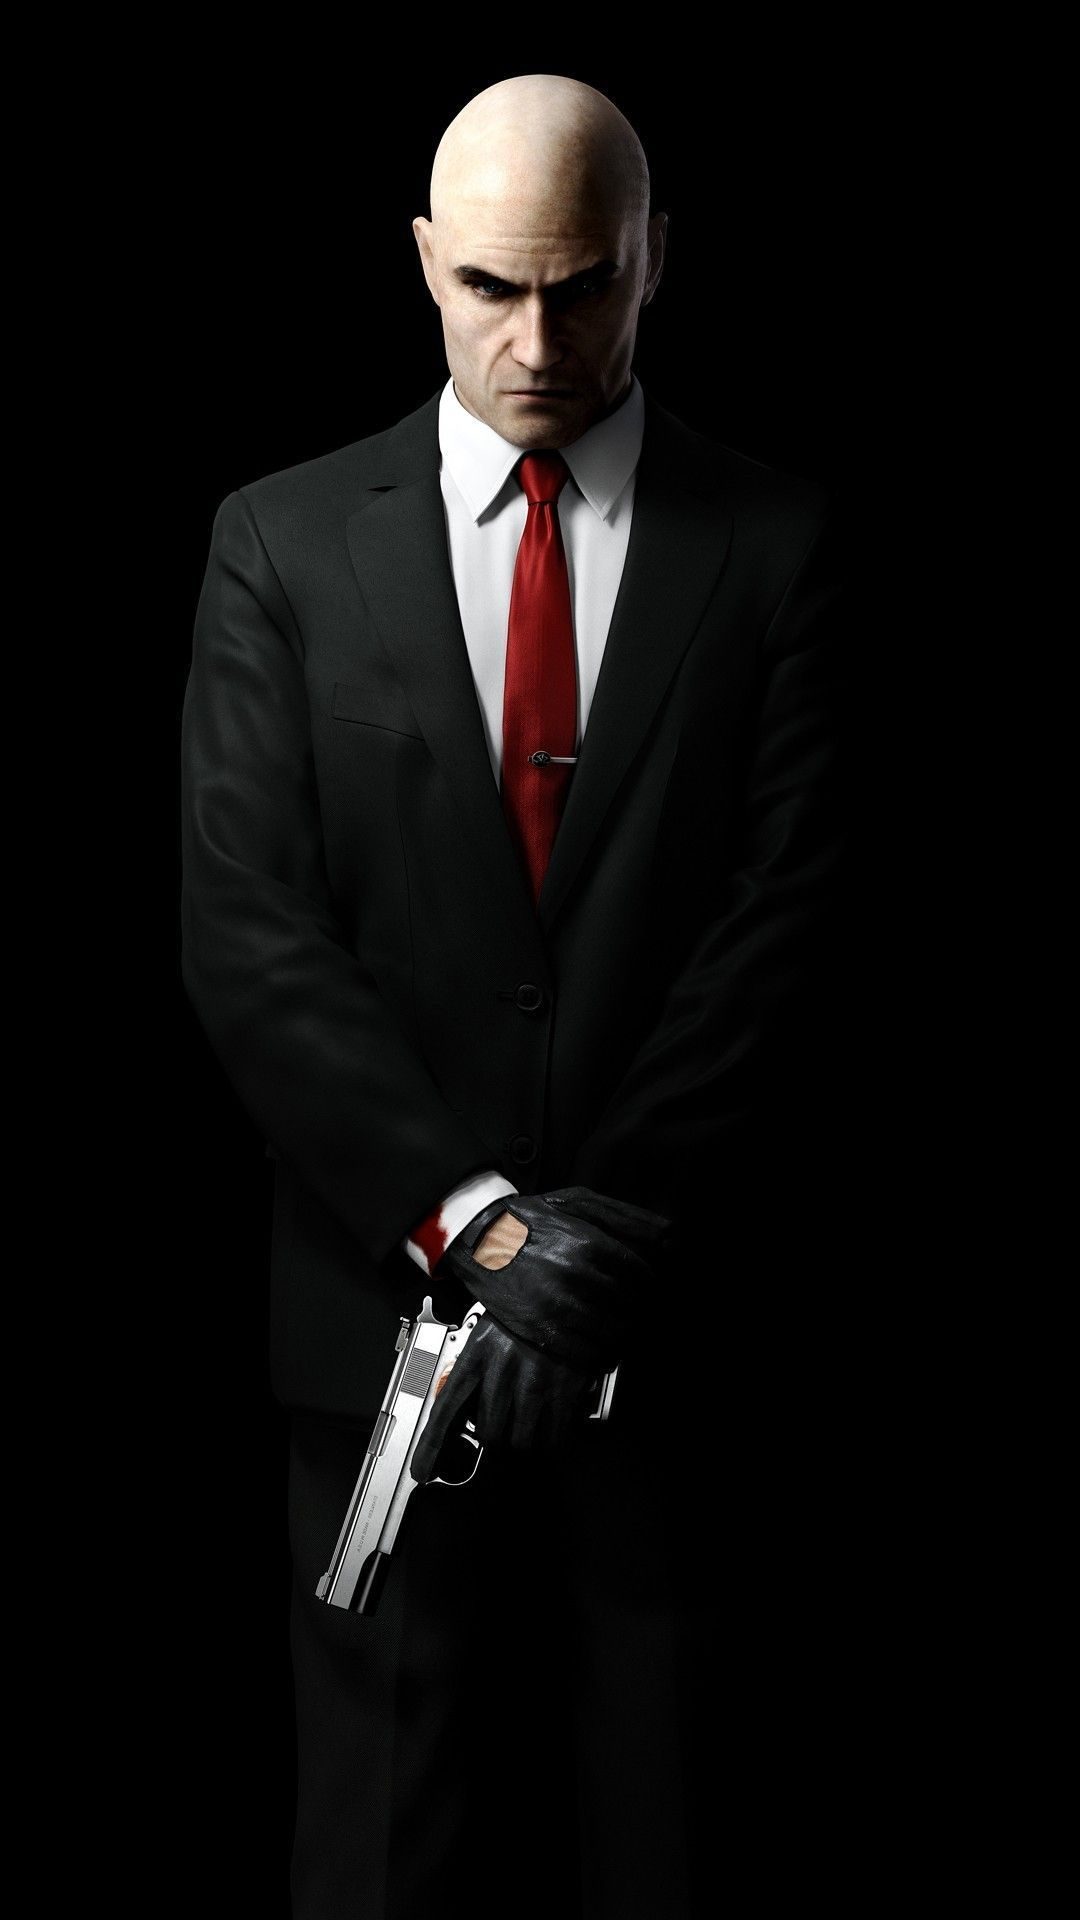 Hitman Phone Wallpapers Top Free Hitman Phone Backgrounds Wallpaperaccess Phone Wallpaper For Men Hitman Phone Wallpaper